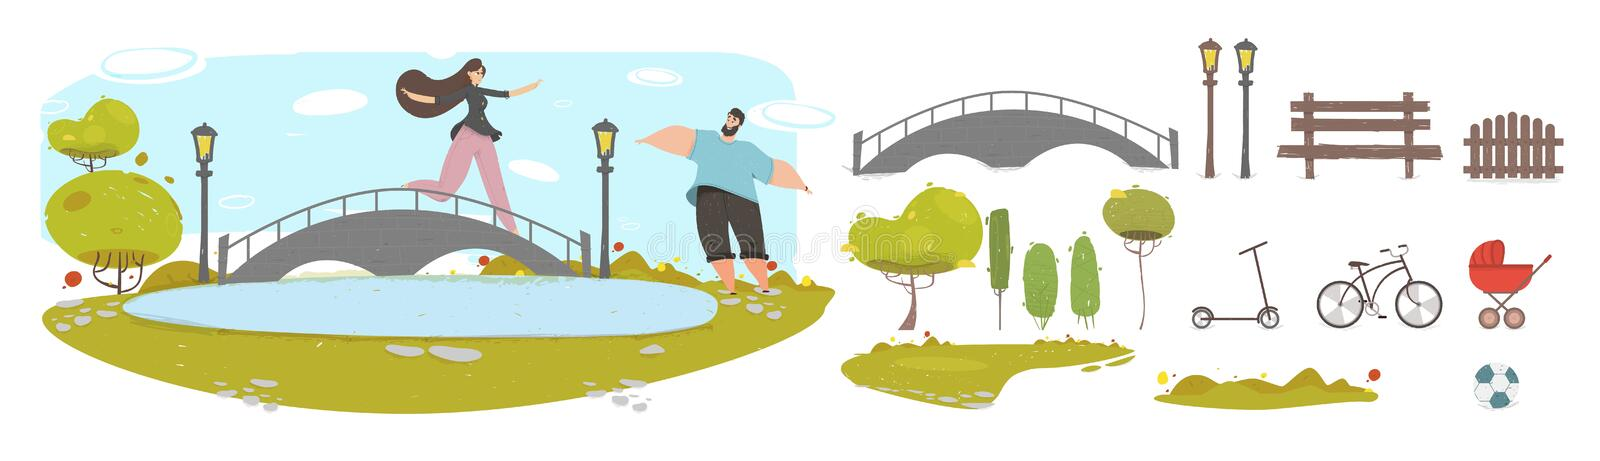 Loving Couple Relations Set People Walking in Park royalty free illustration